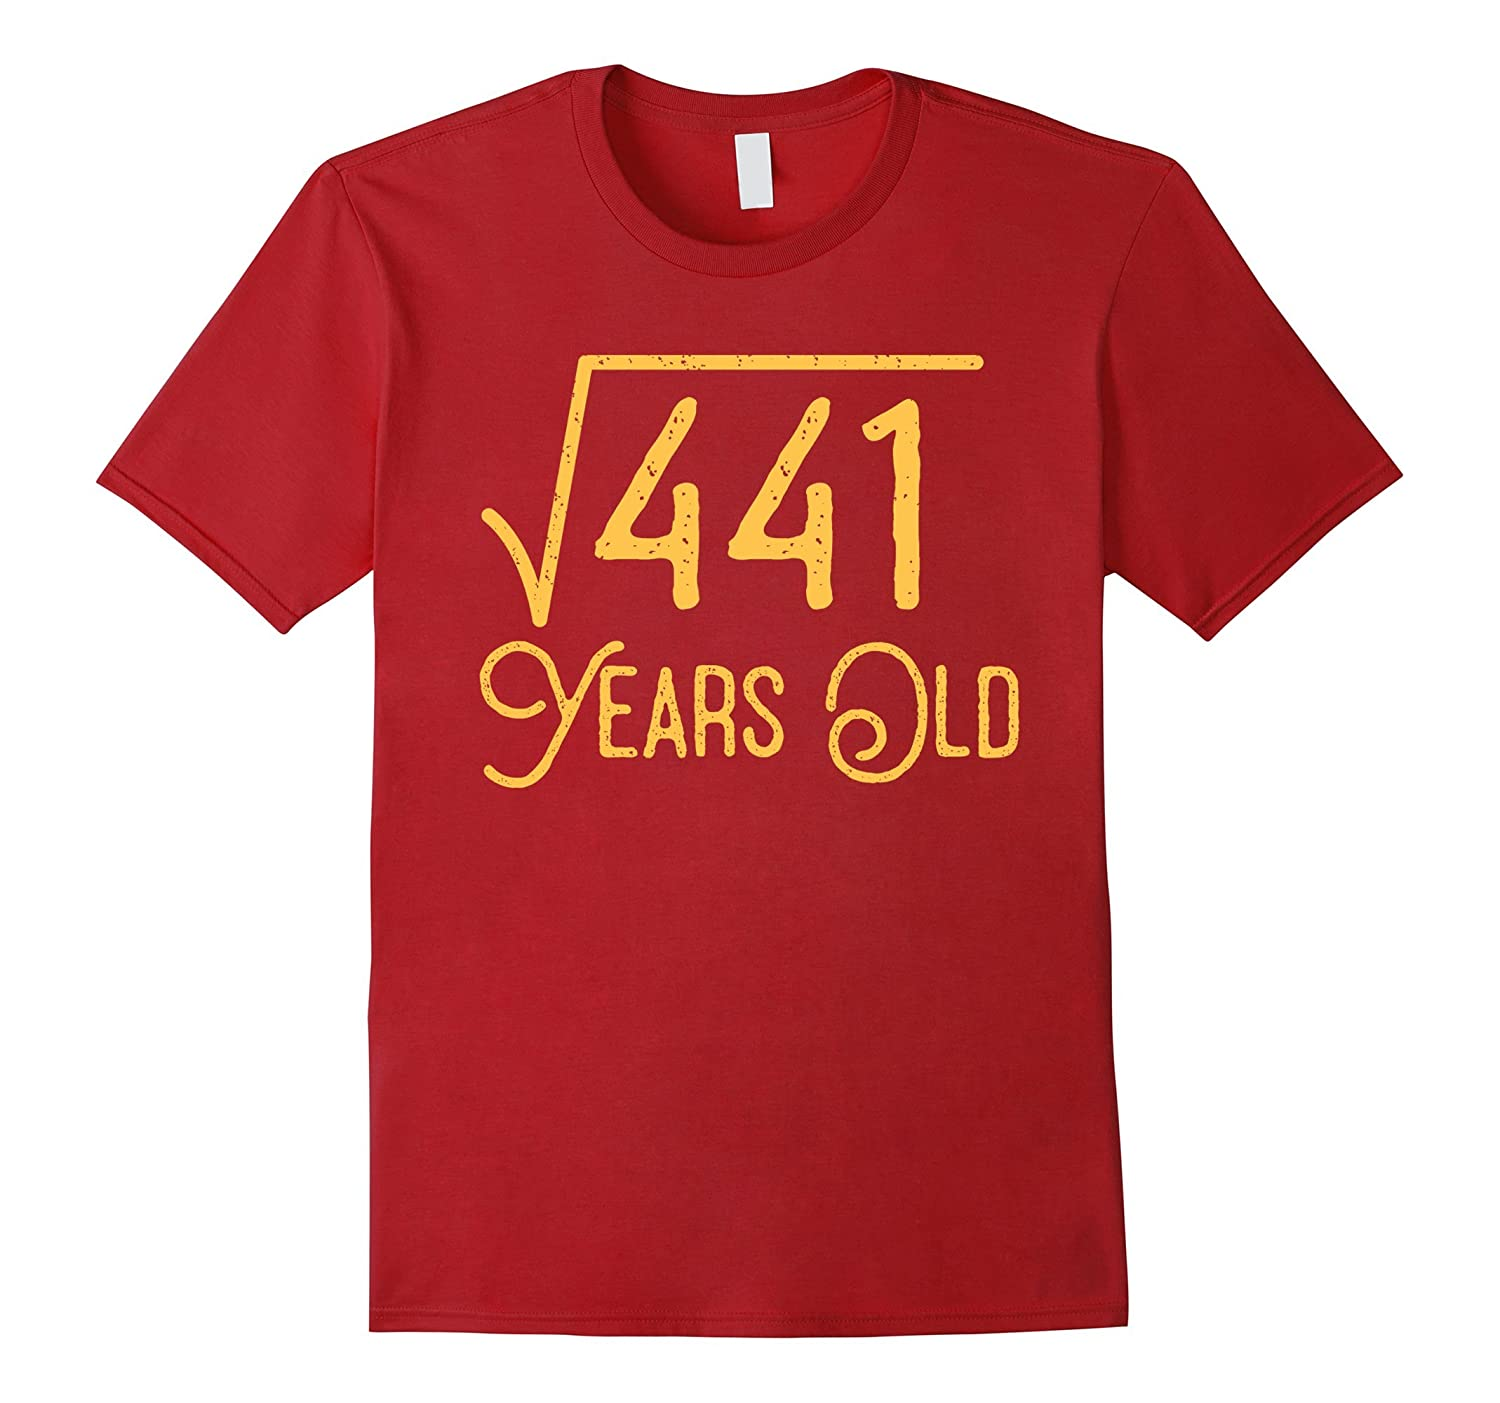 21st Birthday Gift 21 Years Old Square Root Of 441 T Shirt RT